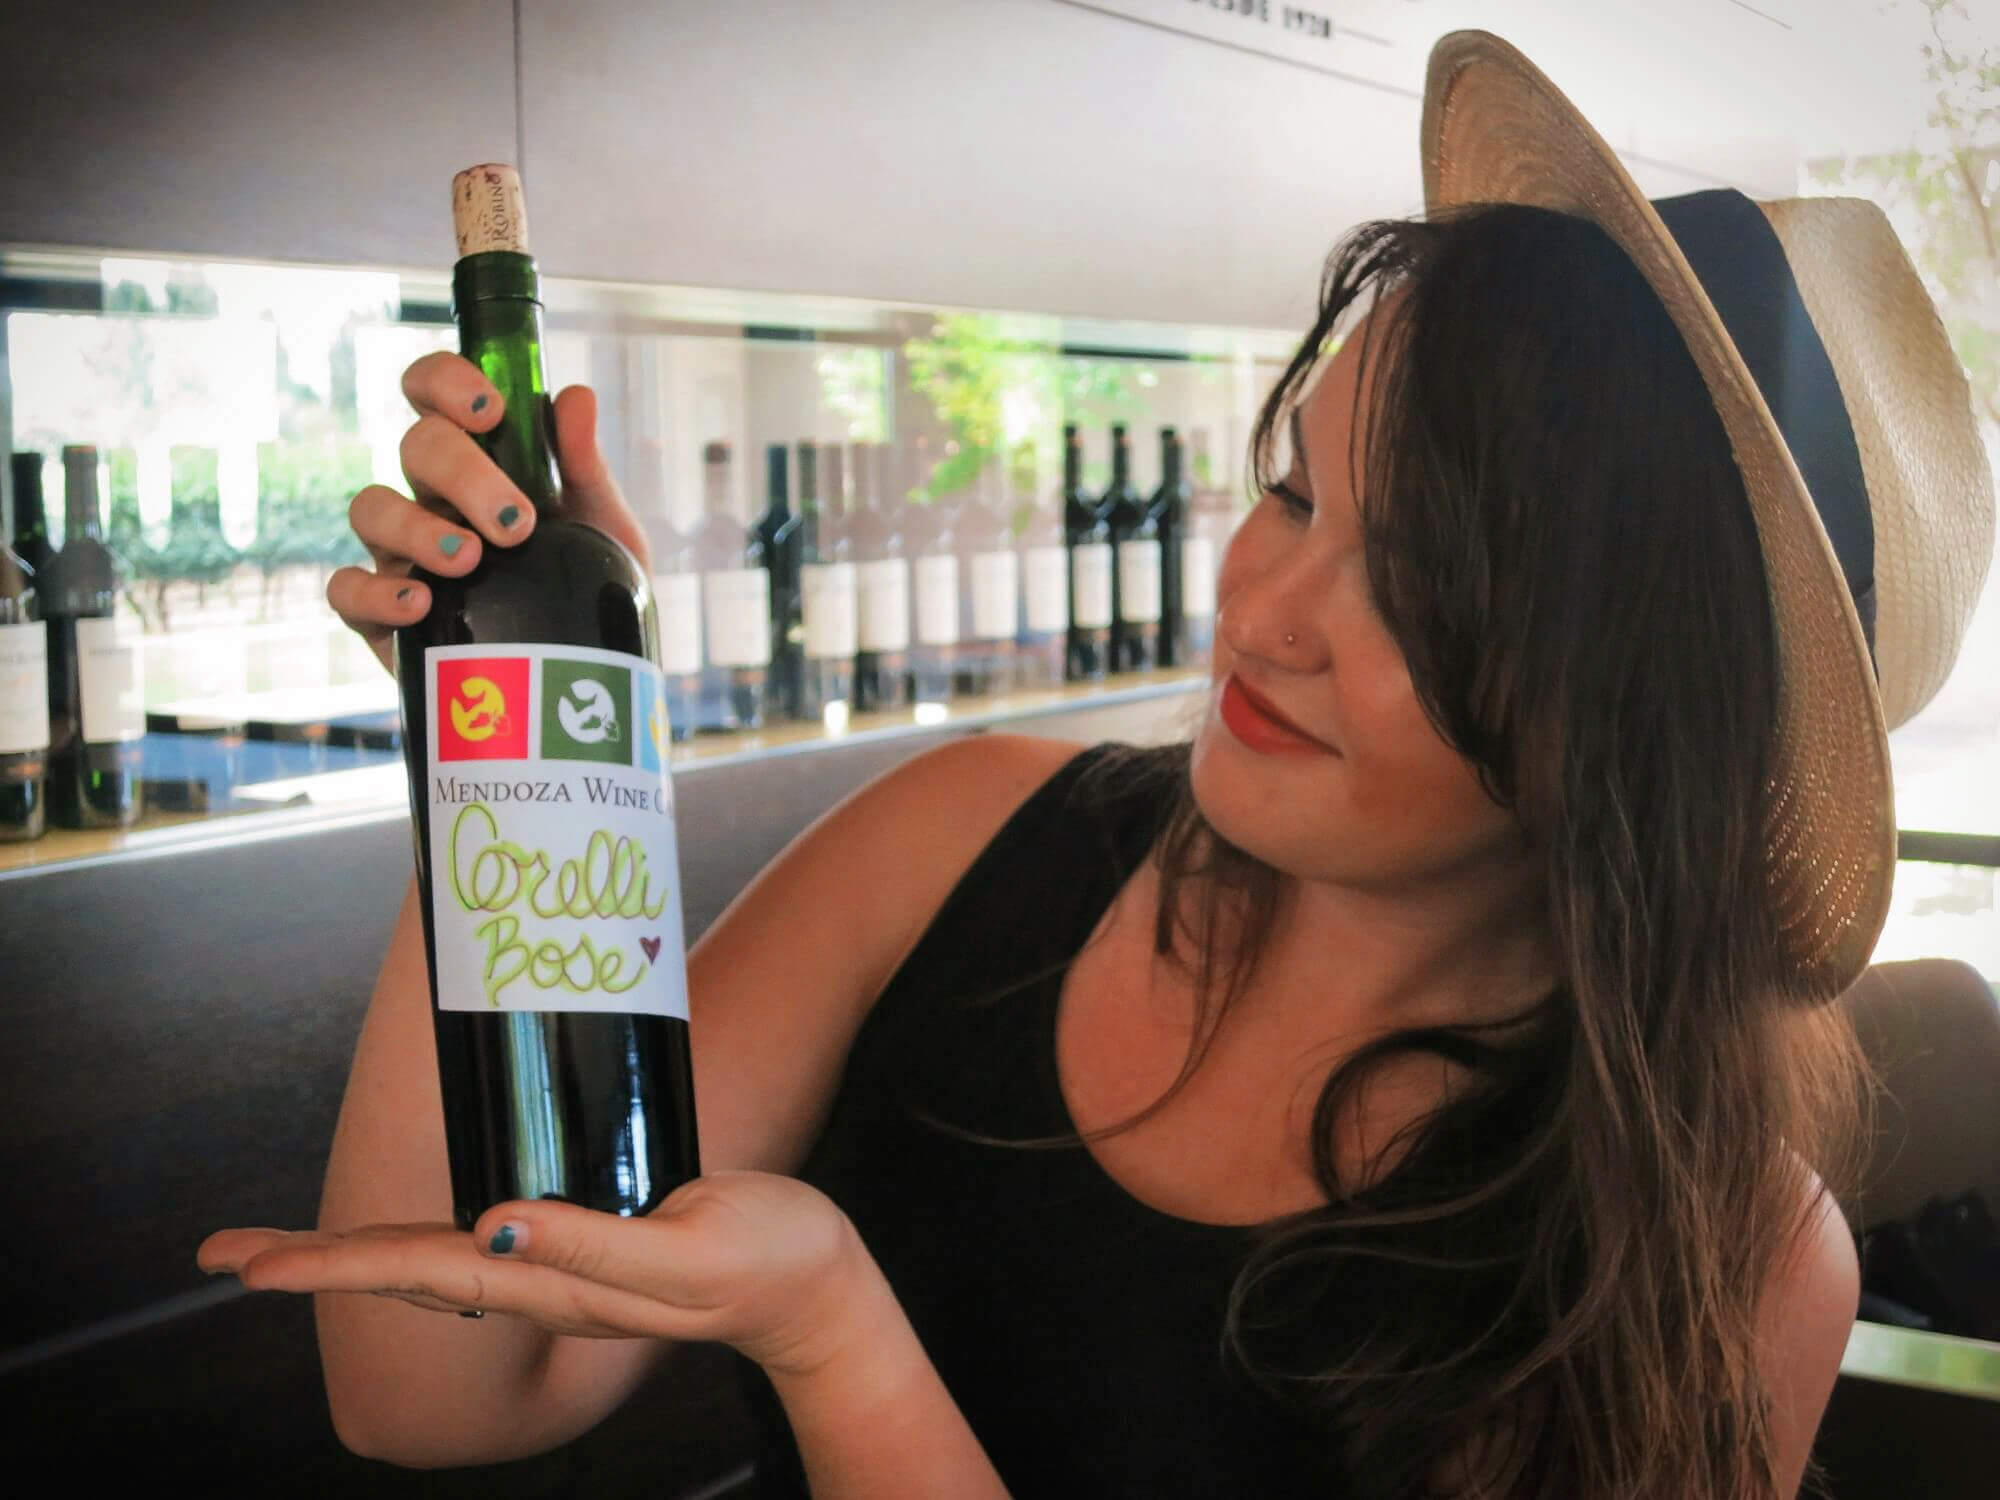 We created our own blend of wines and took home a bottle of our creation in Mendoza, Argentina with Mendoza Wine Camp!